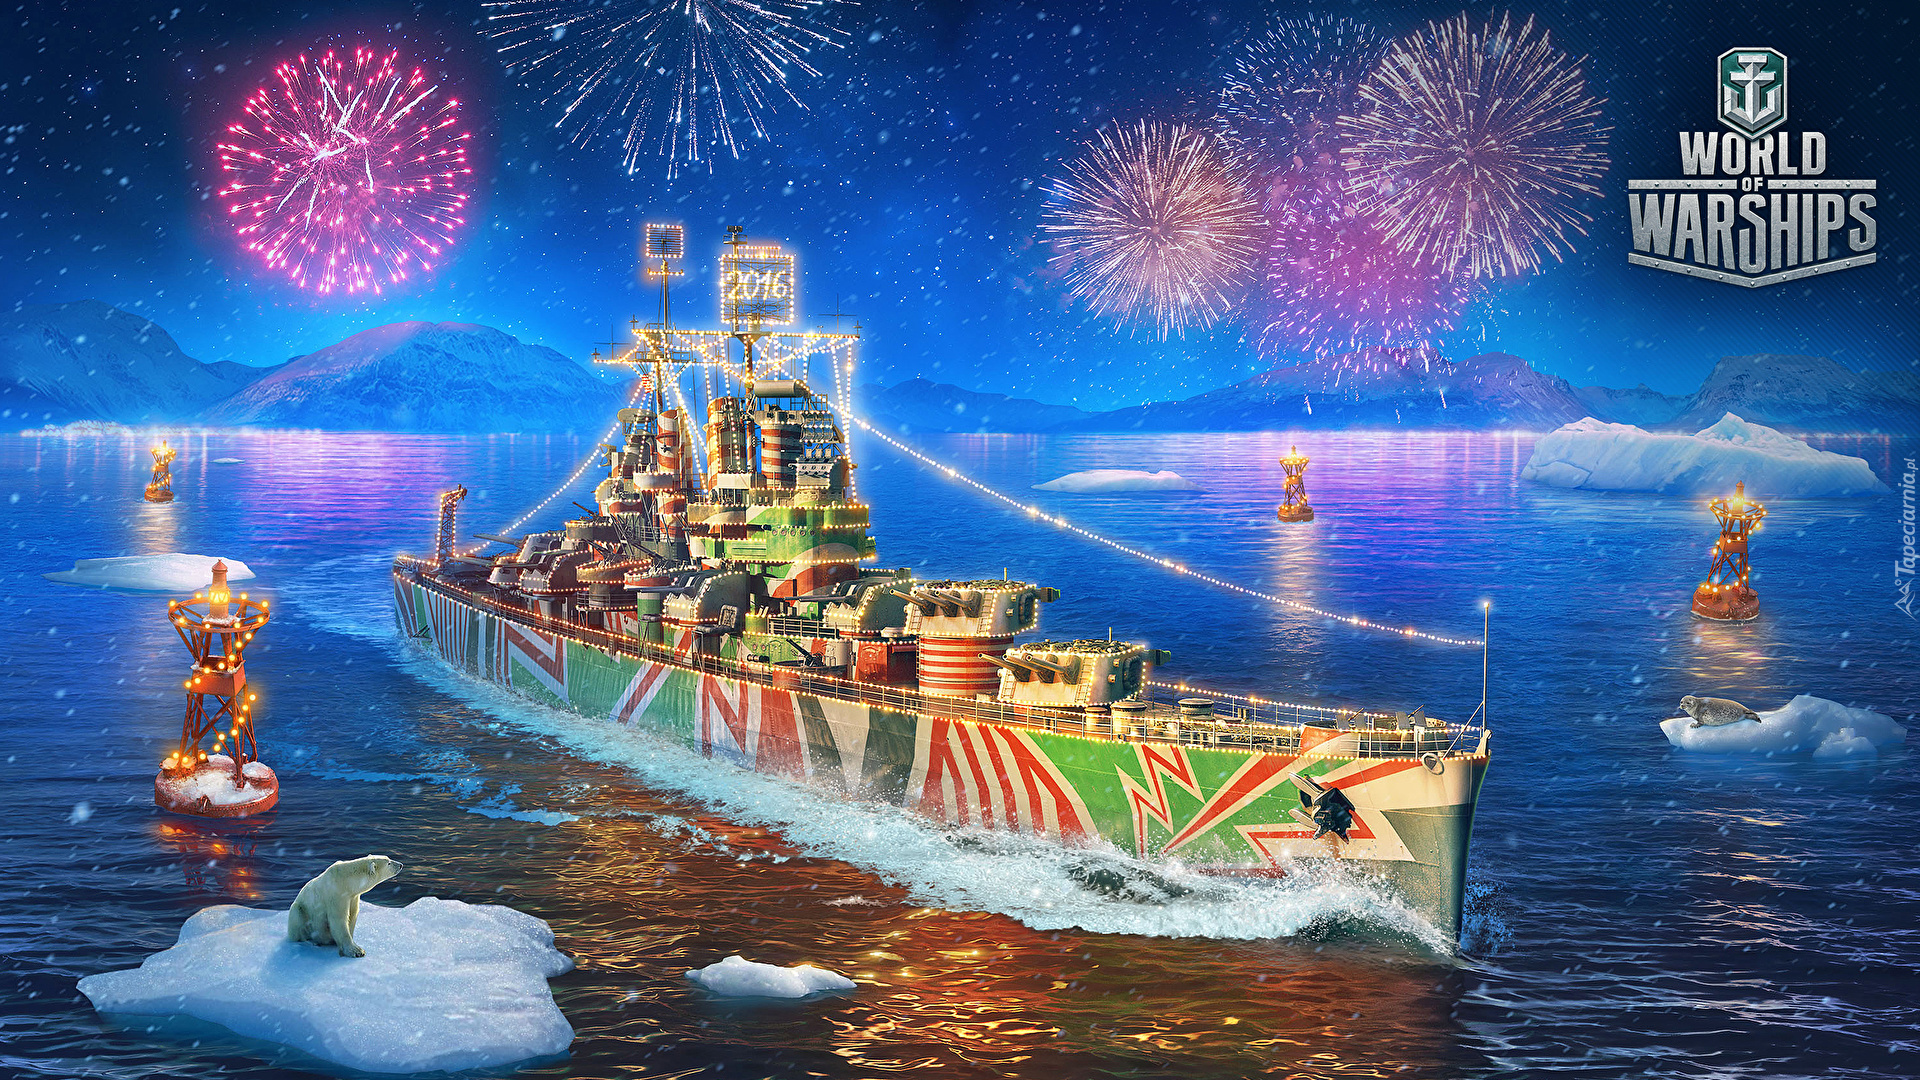 Gra, World of Warships, Okręt, Fajerwerki